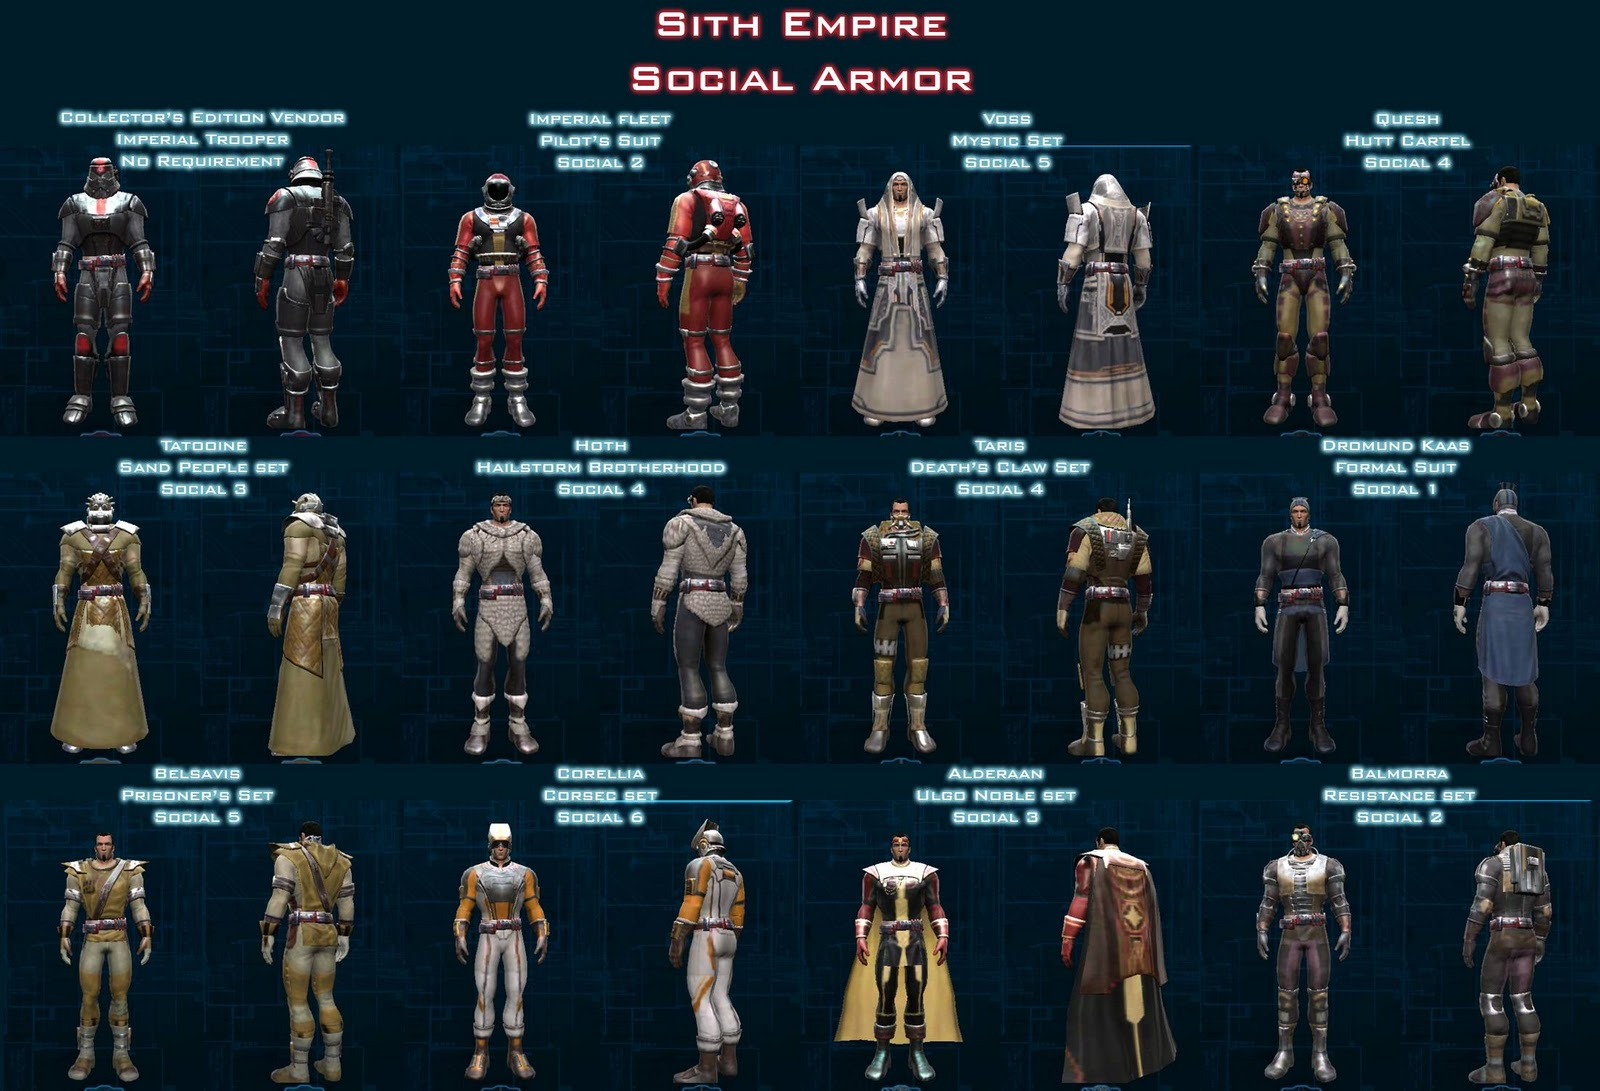 SWTOR Planetary Social Armor/Outfits